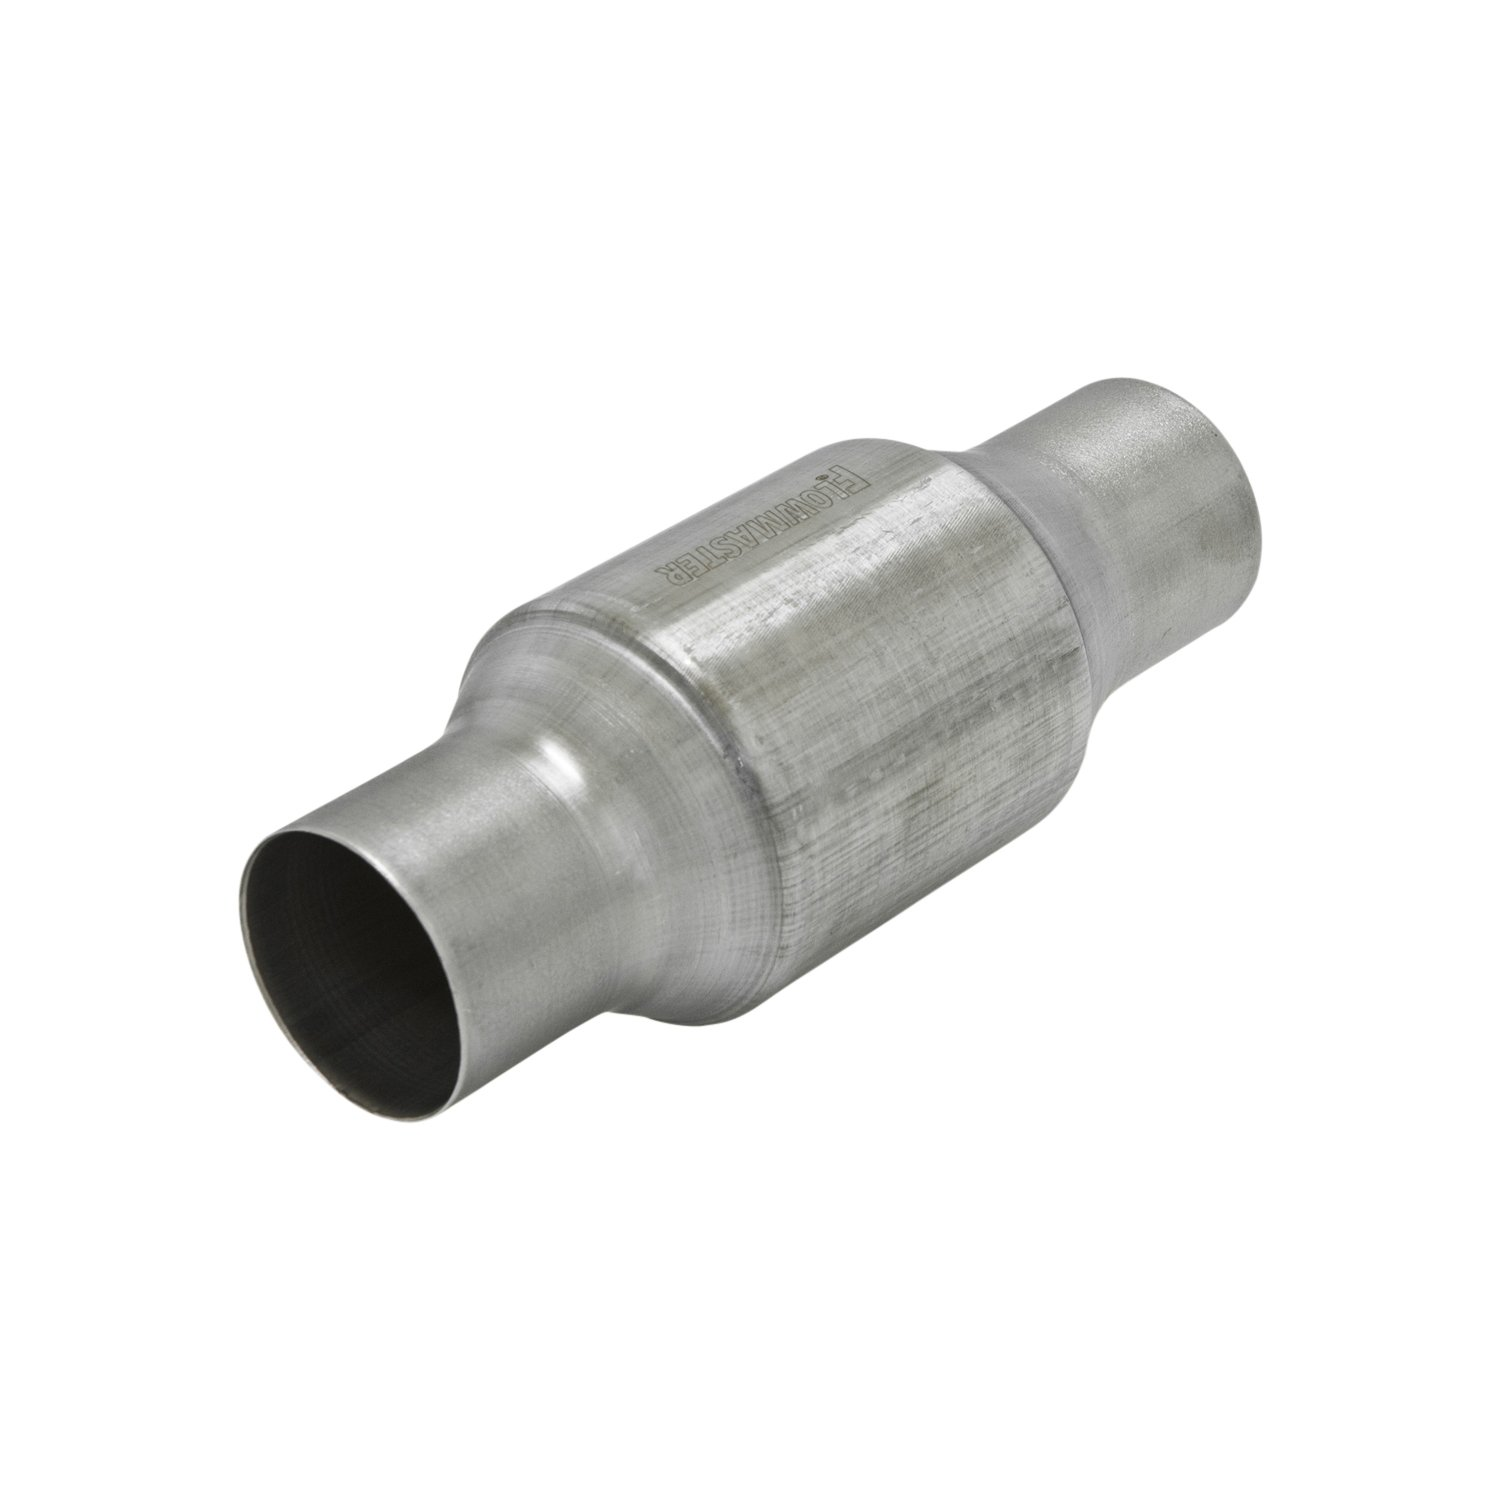 Flowmaster 2230130 223 Series 3'' Inlet/Outlet Universal Catalytic Converter